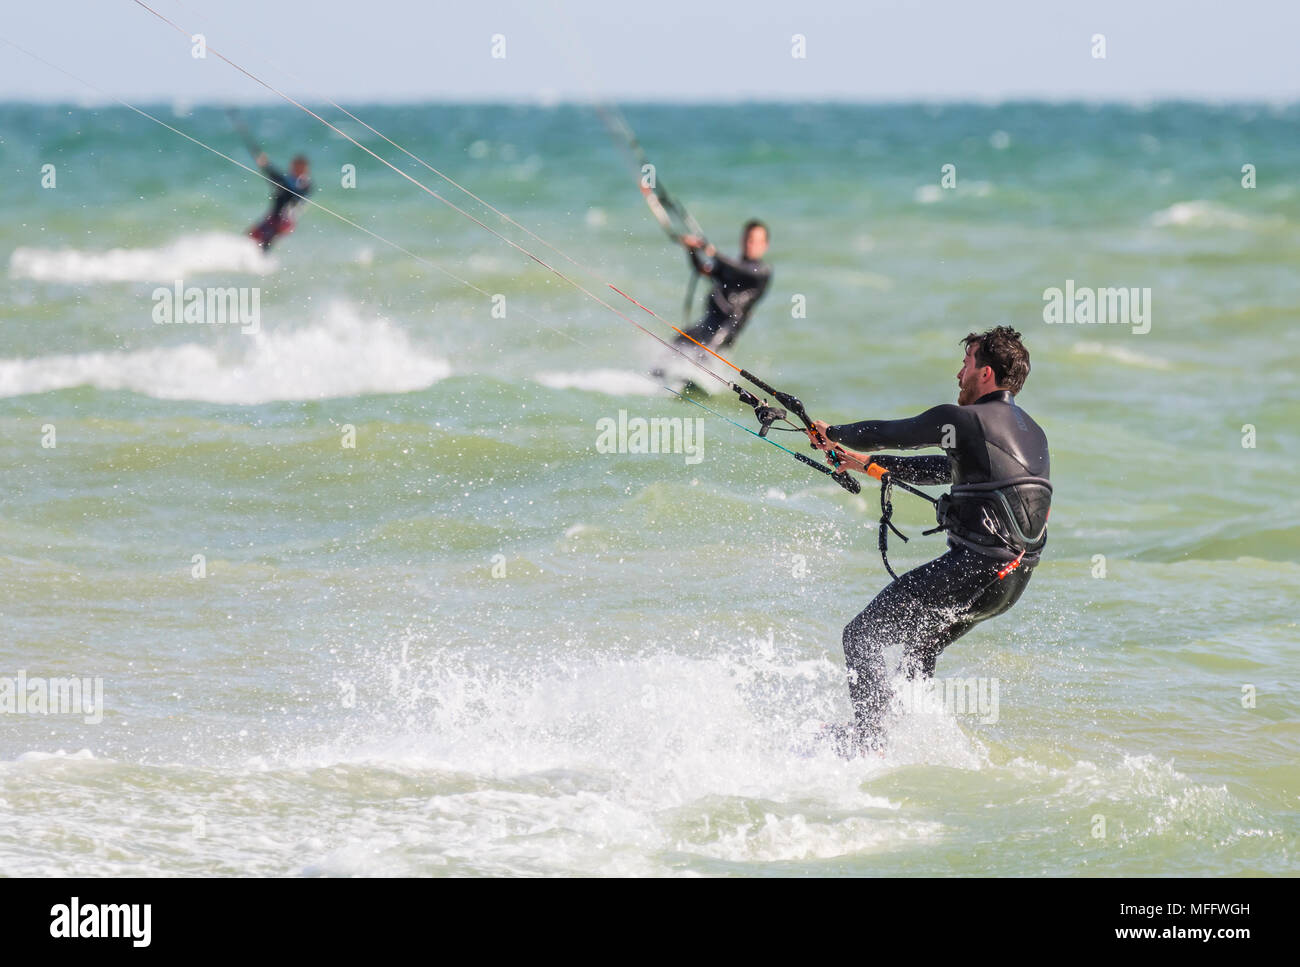 Mae kitesurfing at sea. Kitesurfers on the ocean. Watersports. - Stock Image